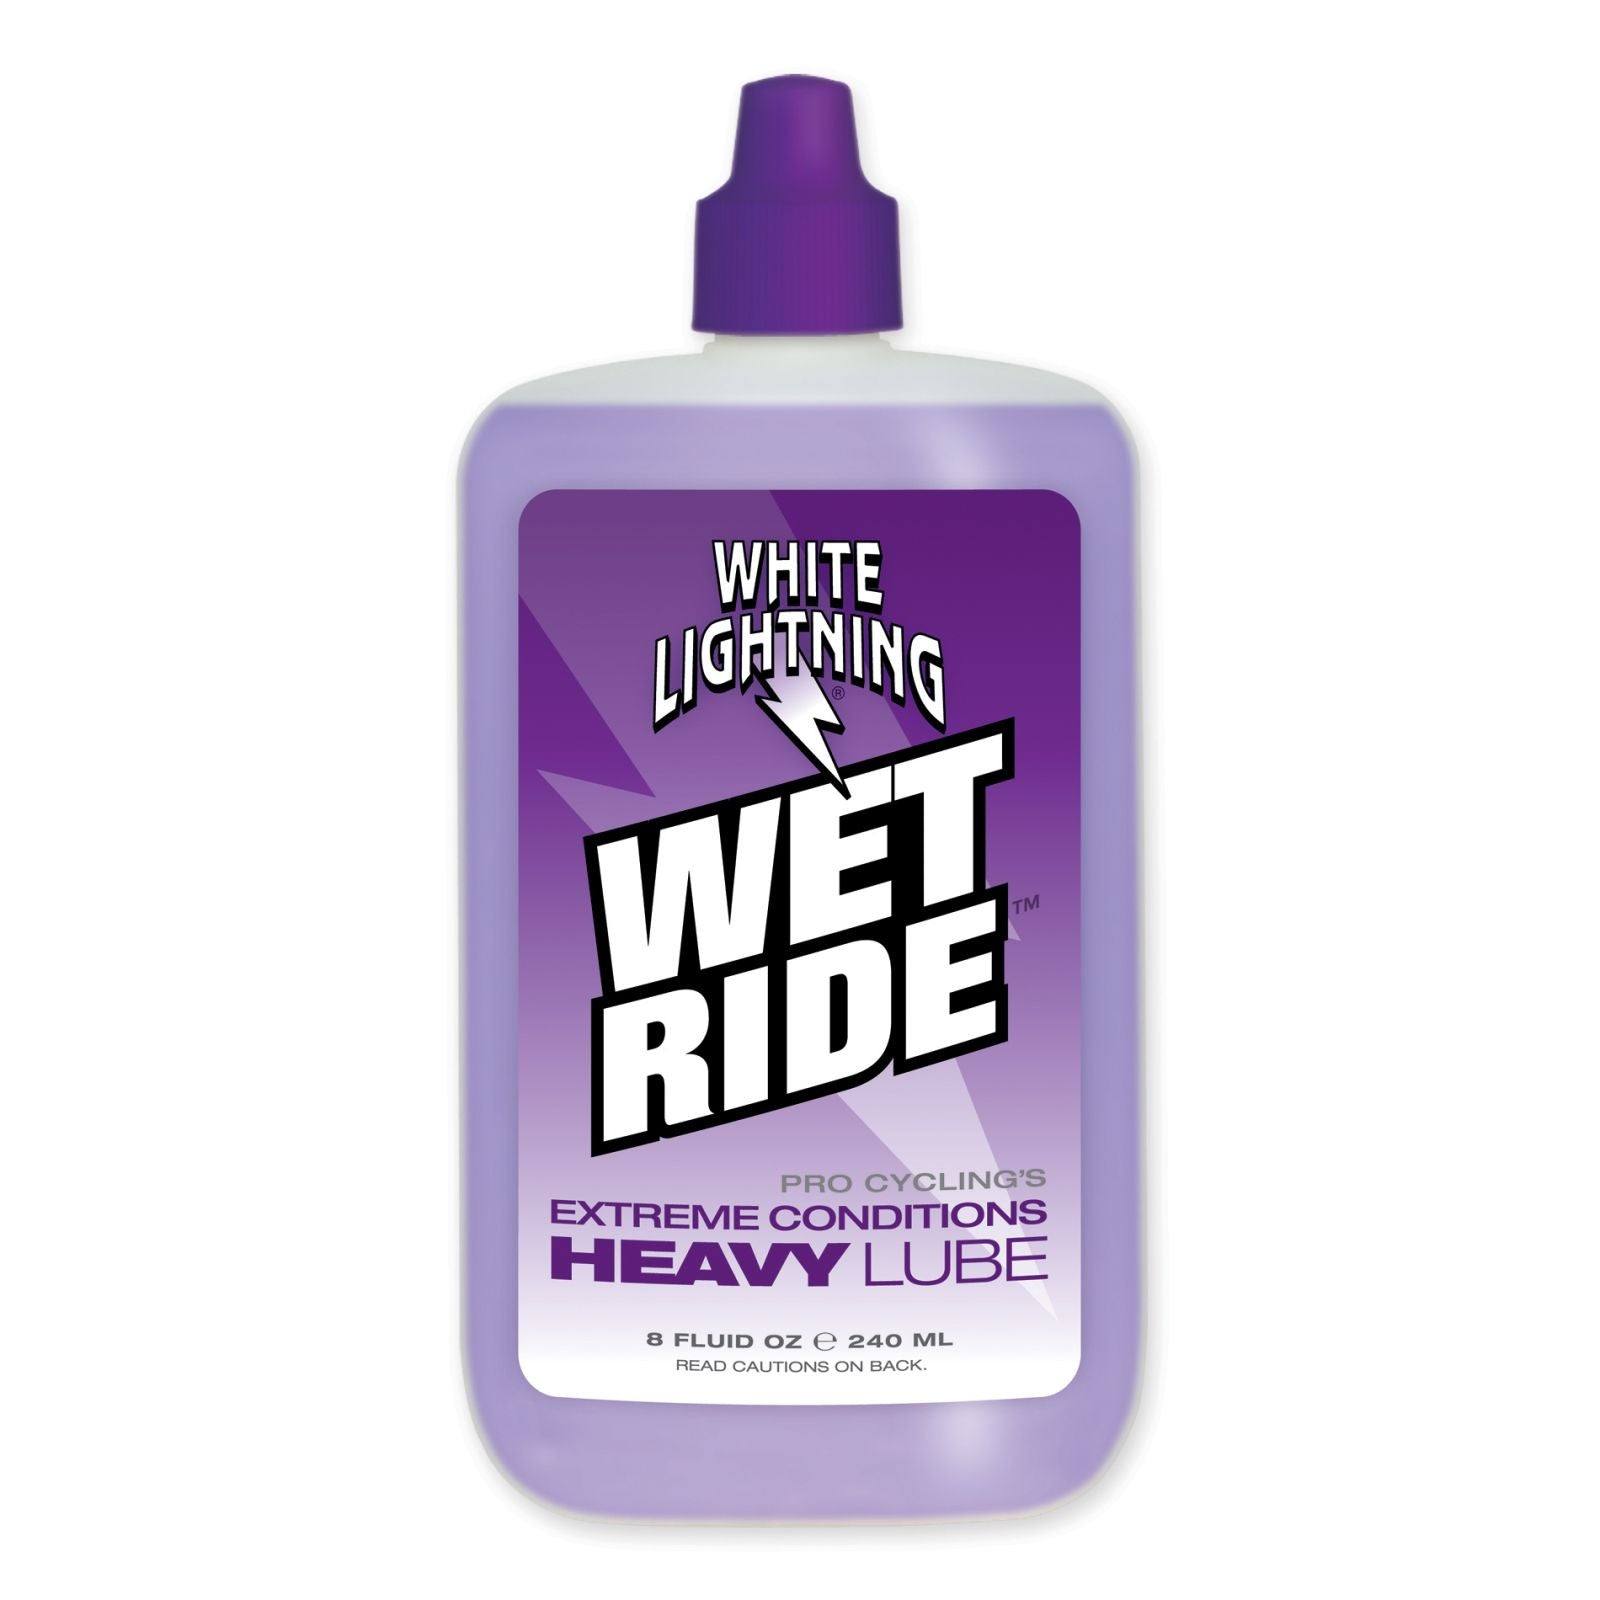 White Lightning Wet Ride Lubricant, Extreme Conditions Heavy Lube 240ml - Racer Sportif